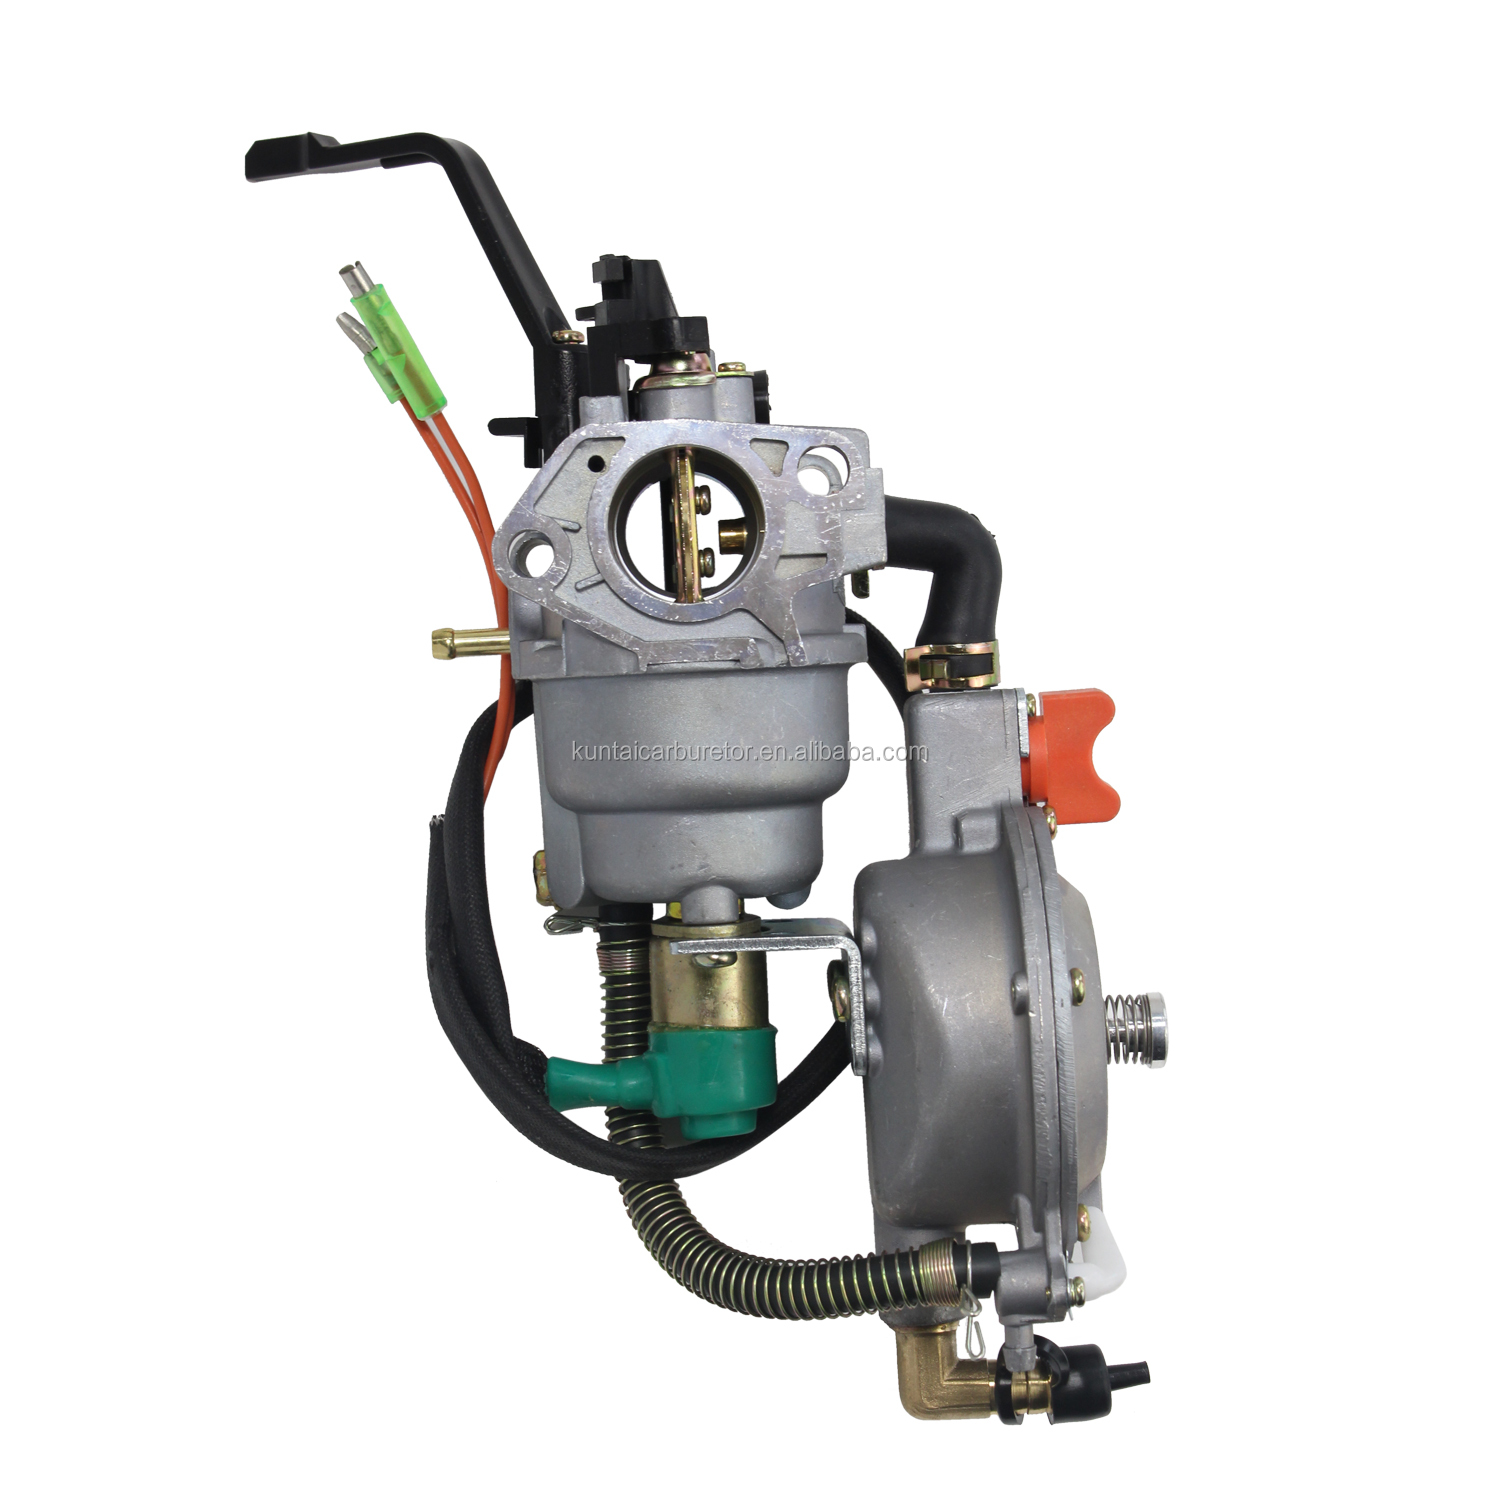 (Ready stock) Dual Fuel Carburetor Generator <strong>LPG</strong> <strong>Conversion</strong> For Honda GX270 GX390 GX420 188F Engine